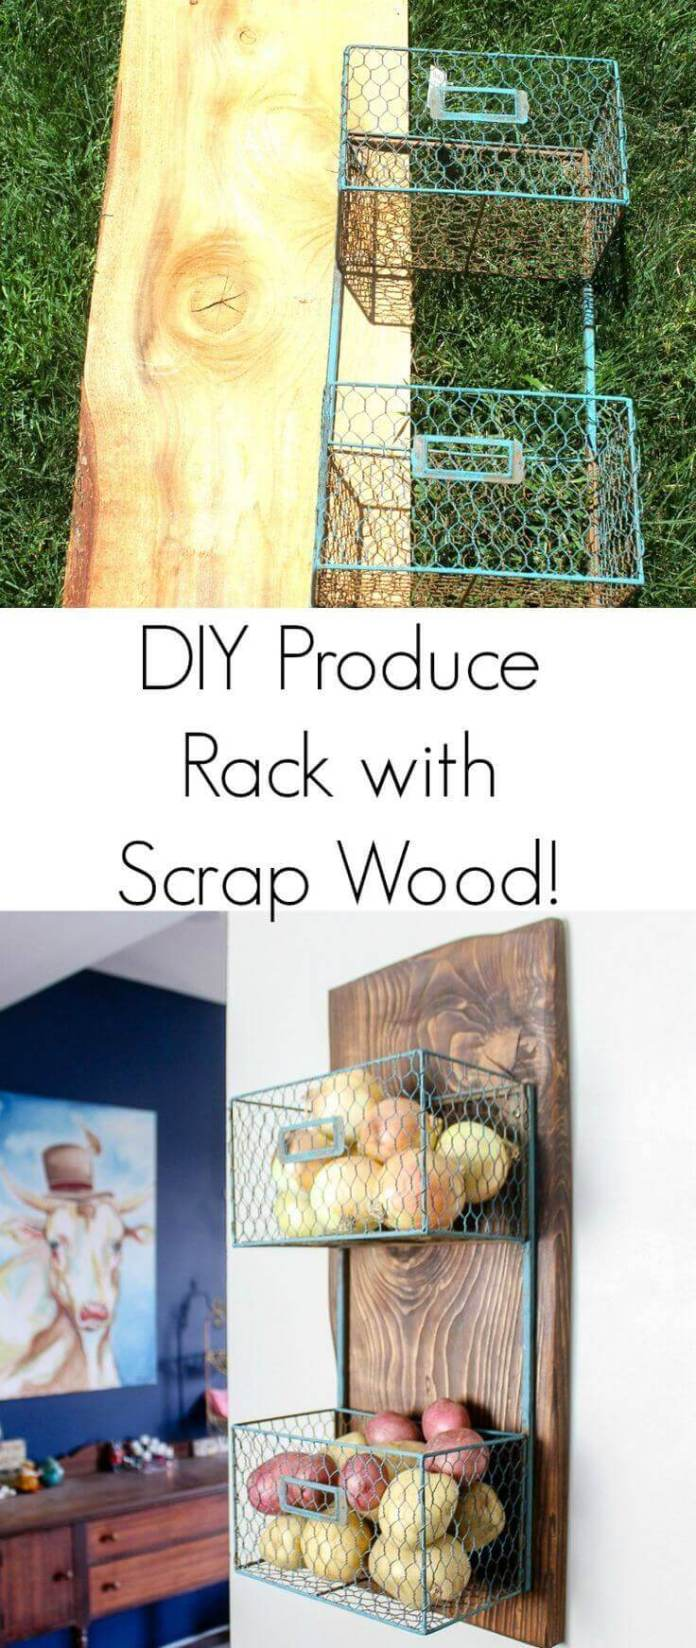 DIY Scrap Wood Produce Rack